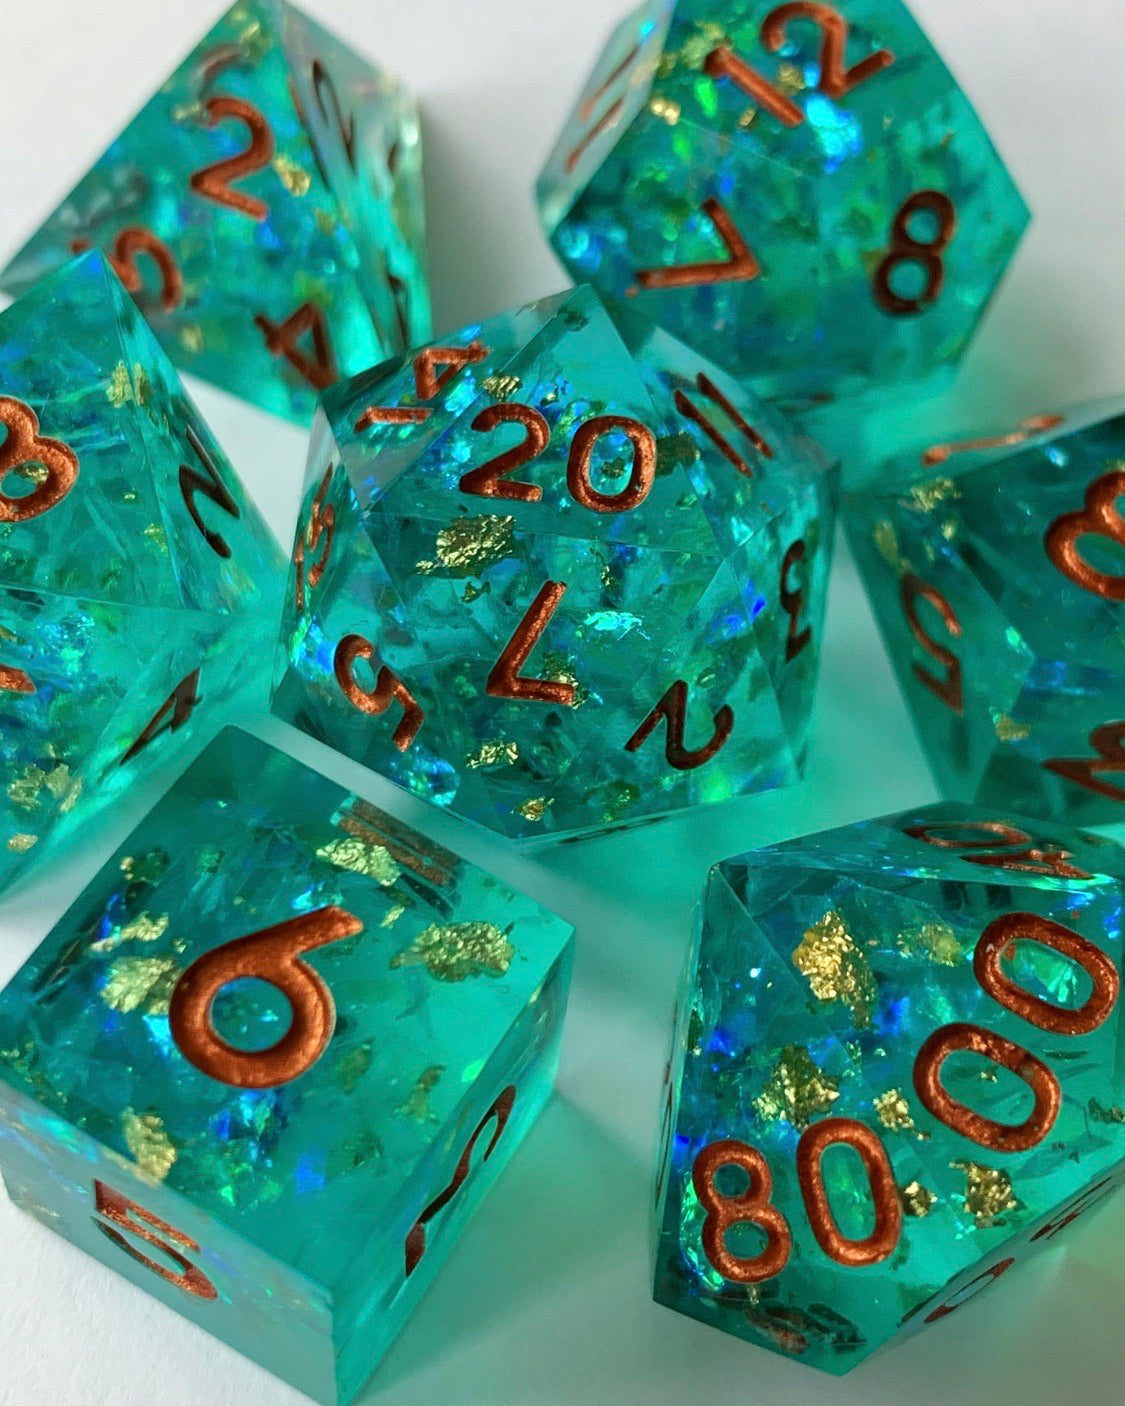 Siren's Song 7-Piece Dice Set